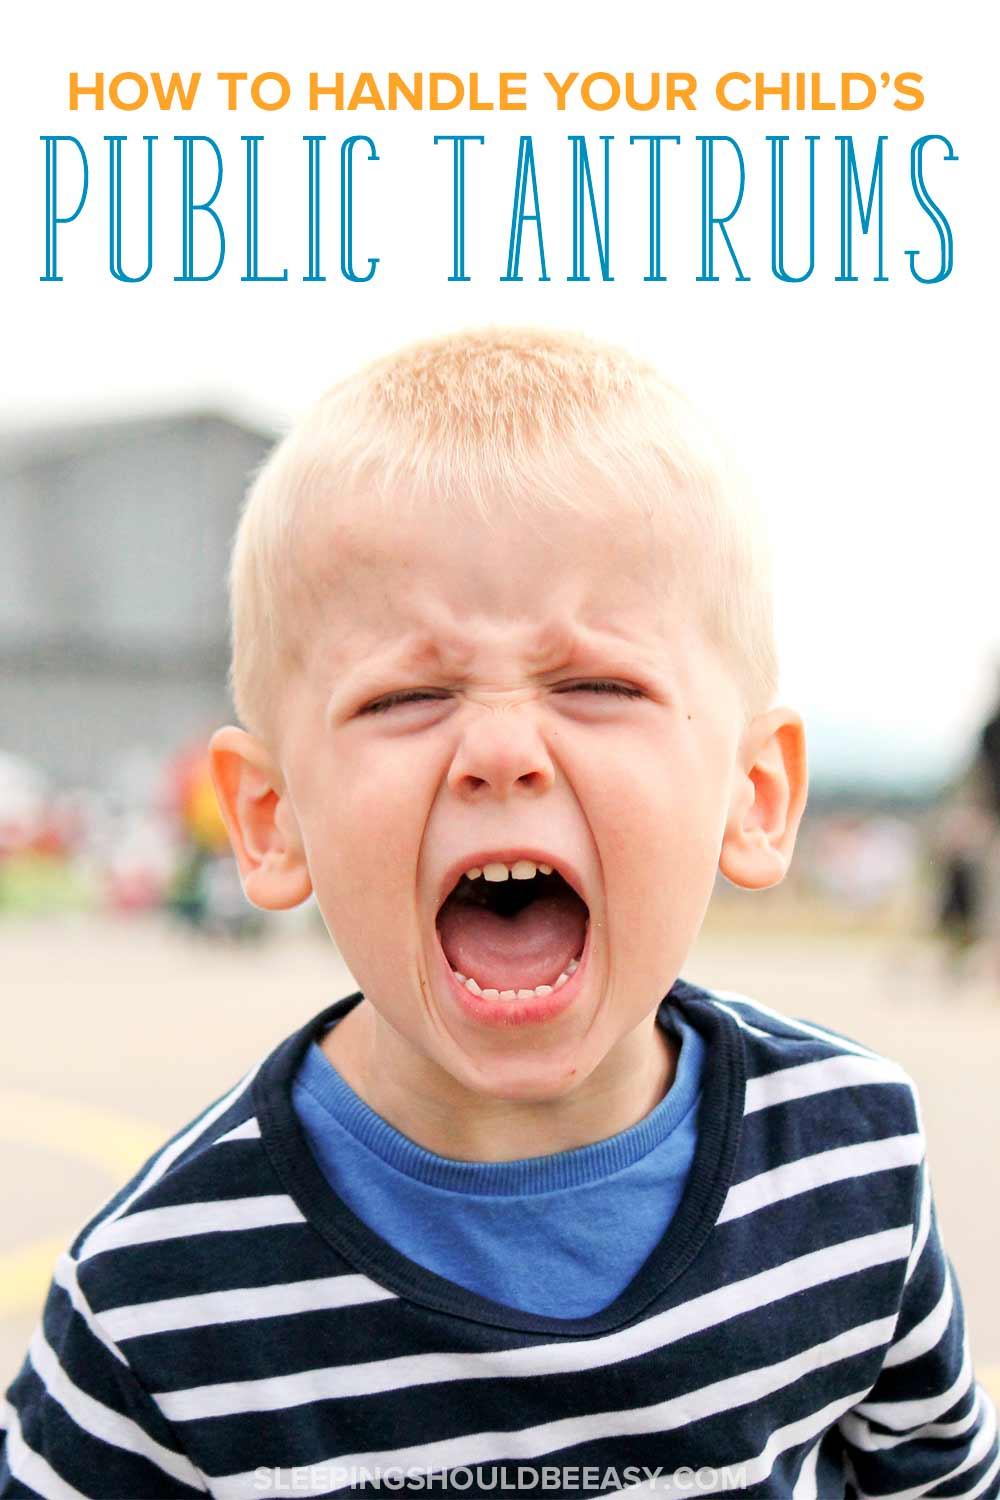 Angry little boy yelling and throwing public tantrums